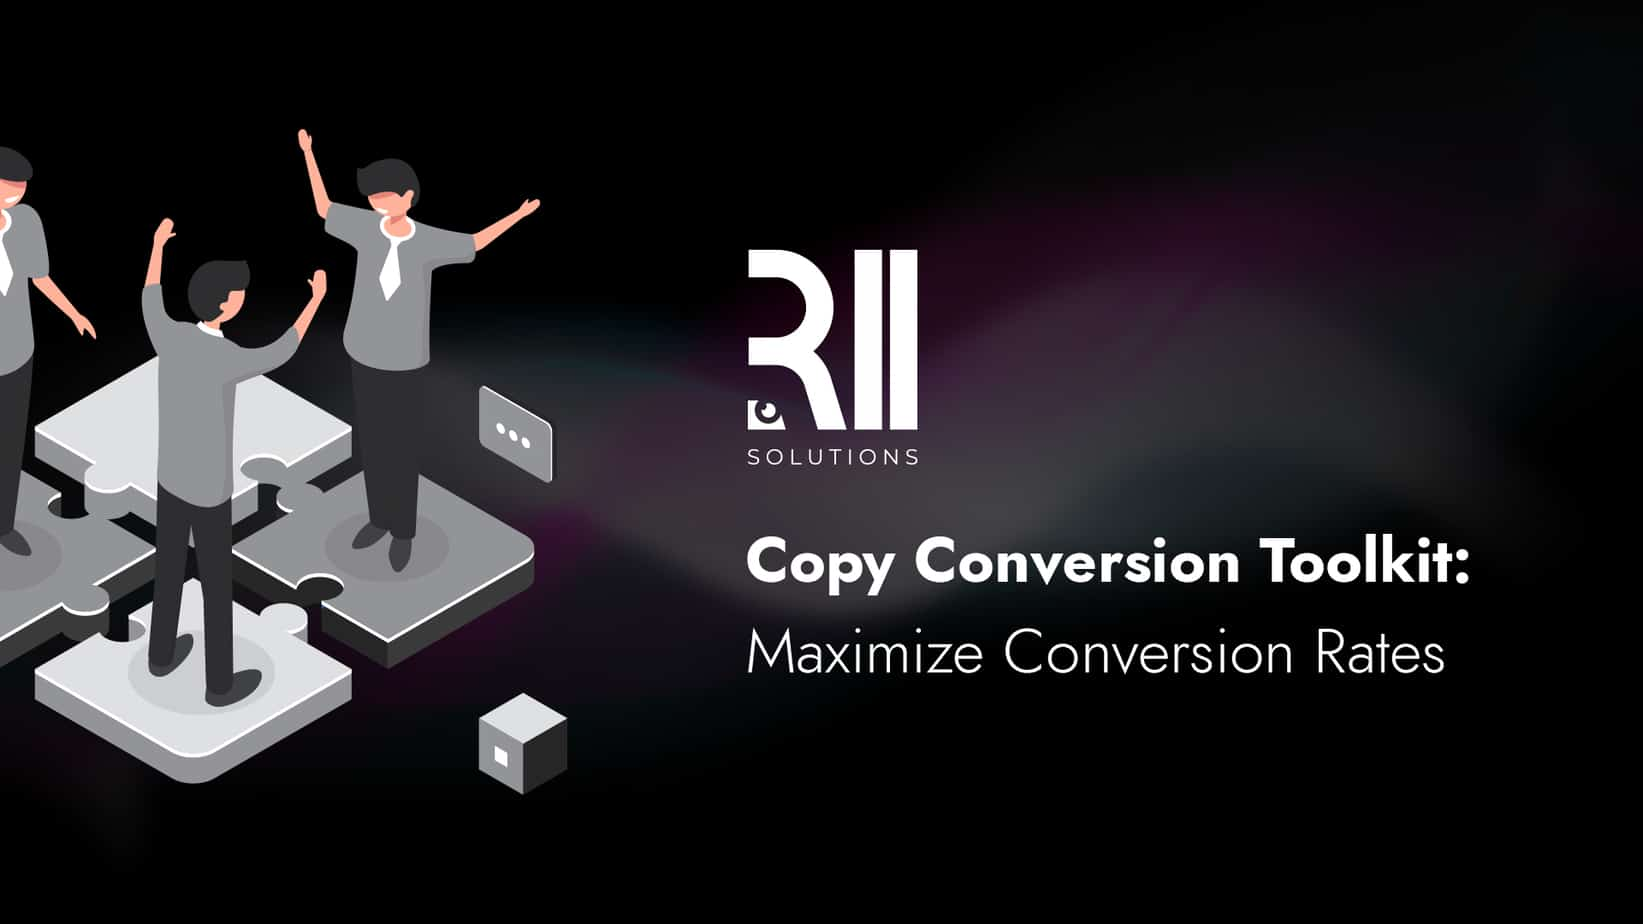 Copy Conversion Rate Marketing